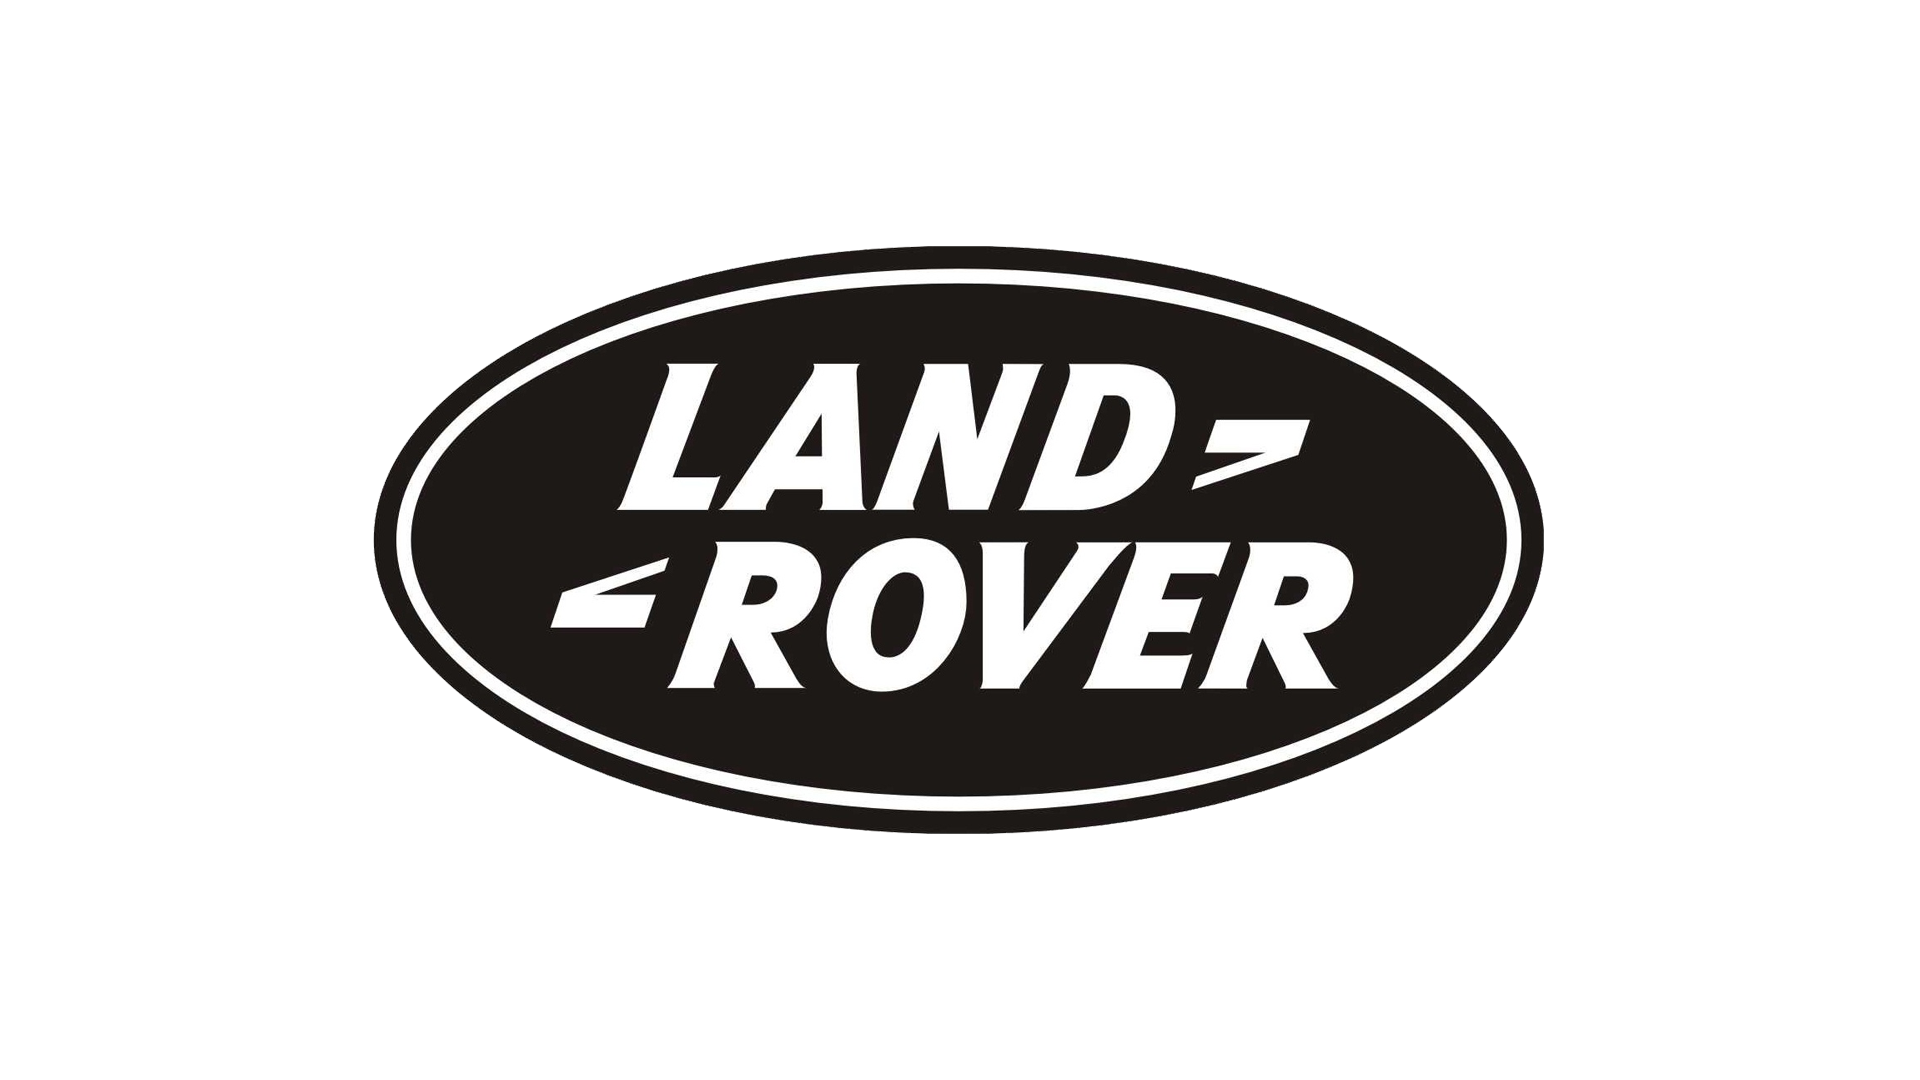 Land Rover Symbol PNG Image